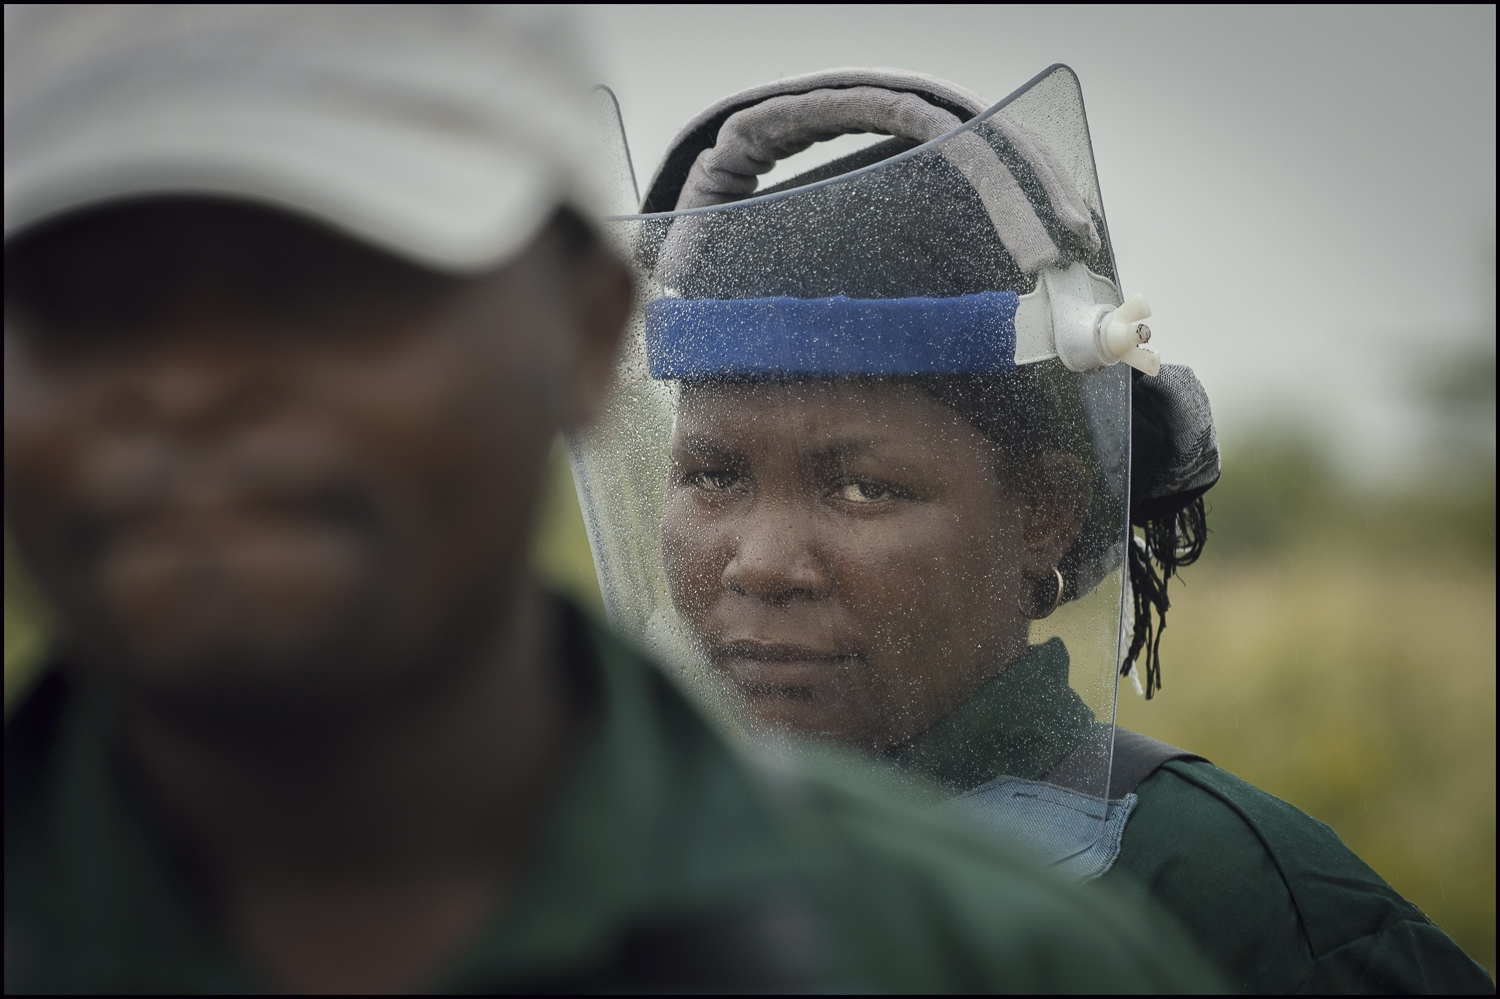 Demining stops due to the rain limiting visibility in Damo minefield Maputo Province, Mozambique.